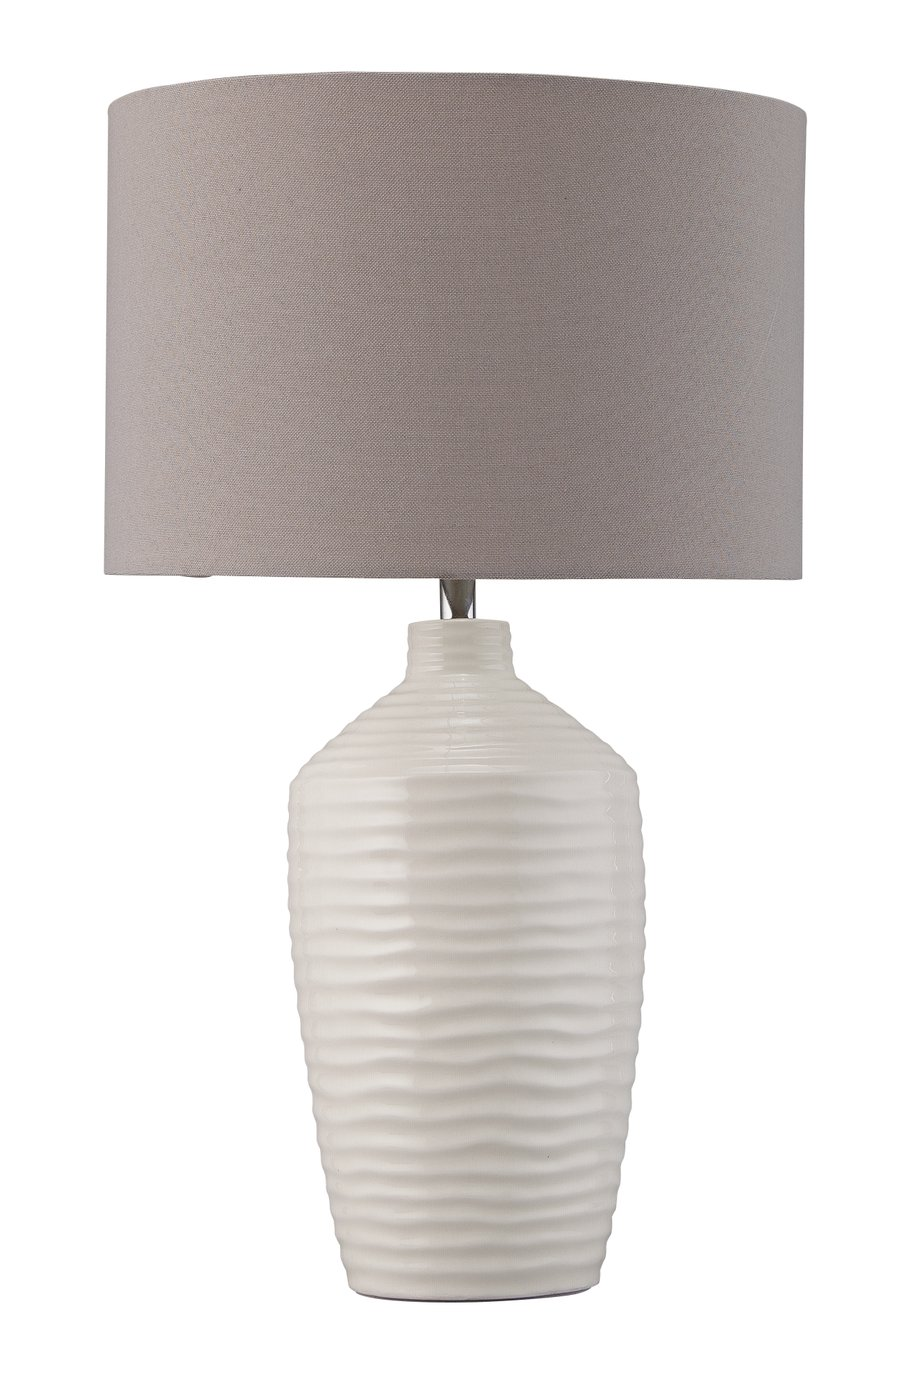 Argos Home Ripple Ceramic Table Lamp